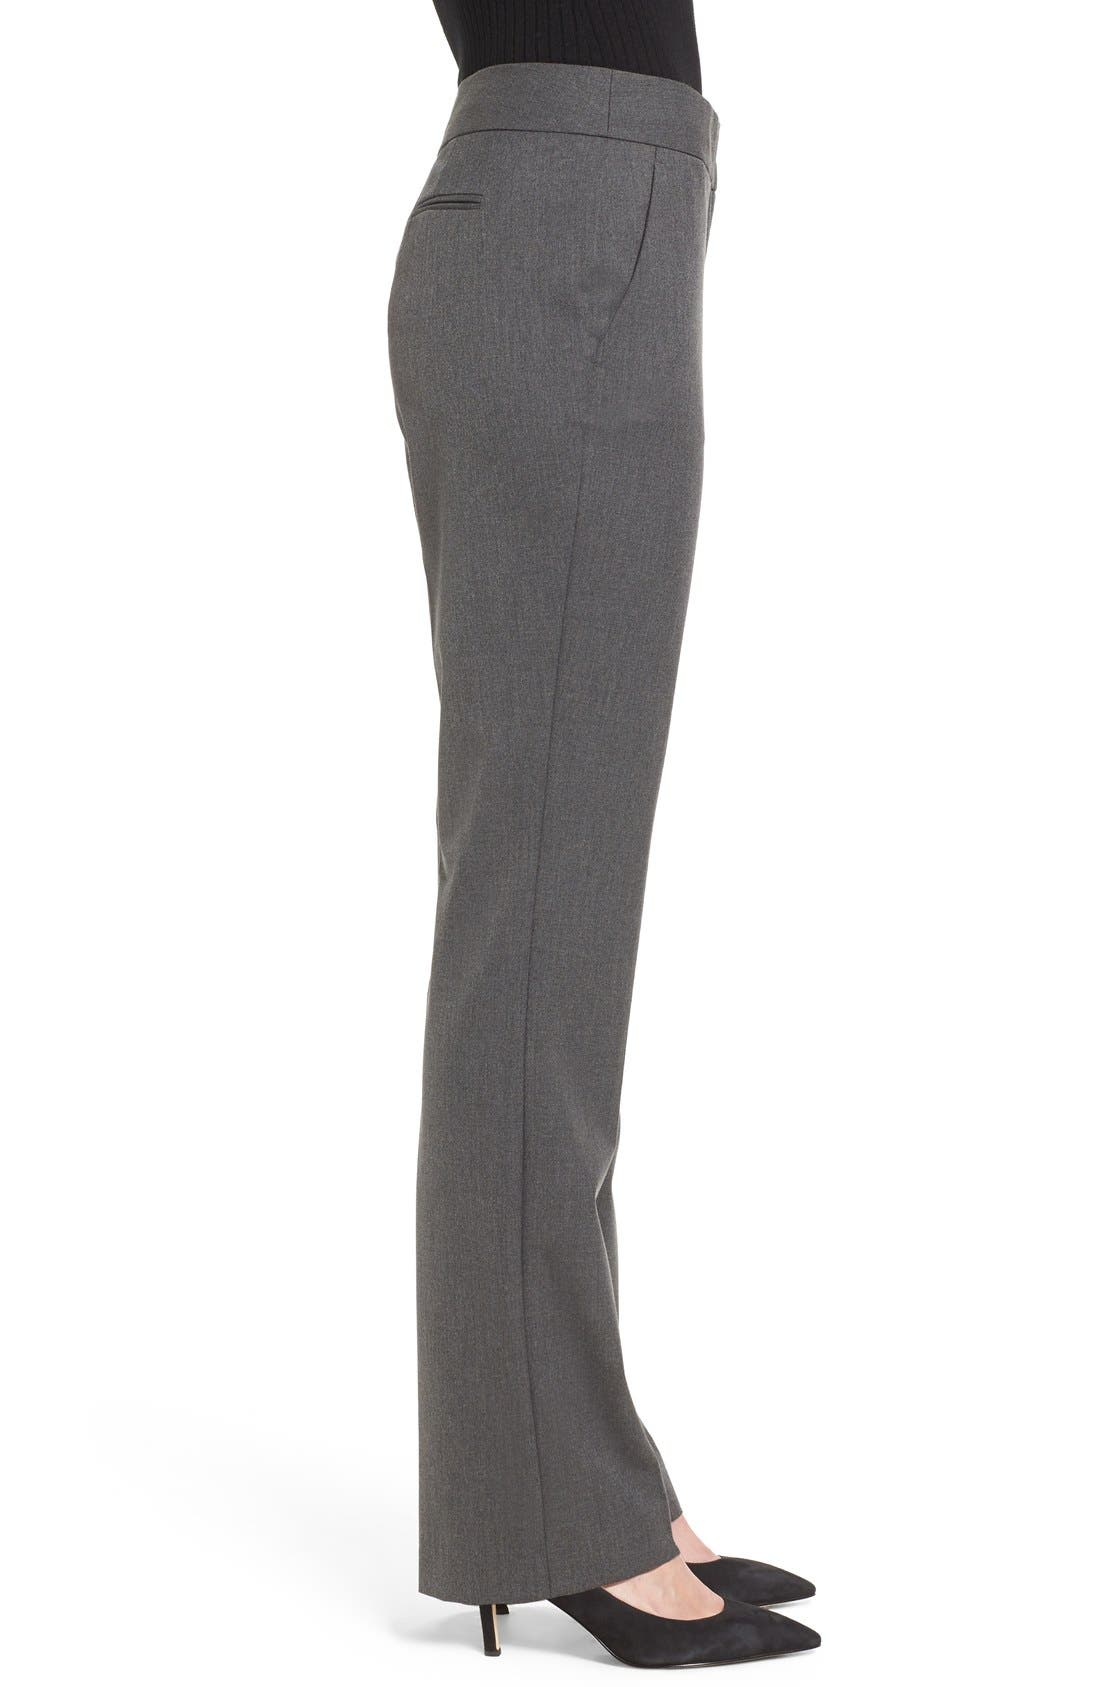 Straight Leg Pants,                             Alternate thumbnail 3, color,                             Dark Heather Grey